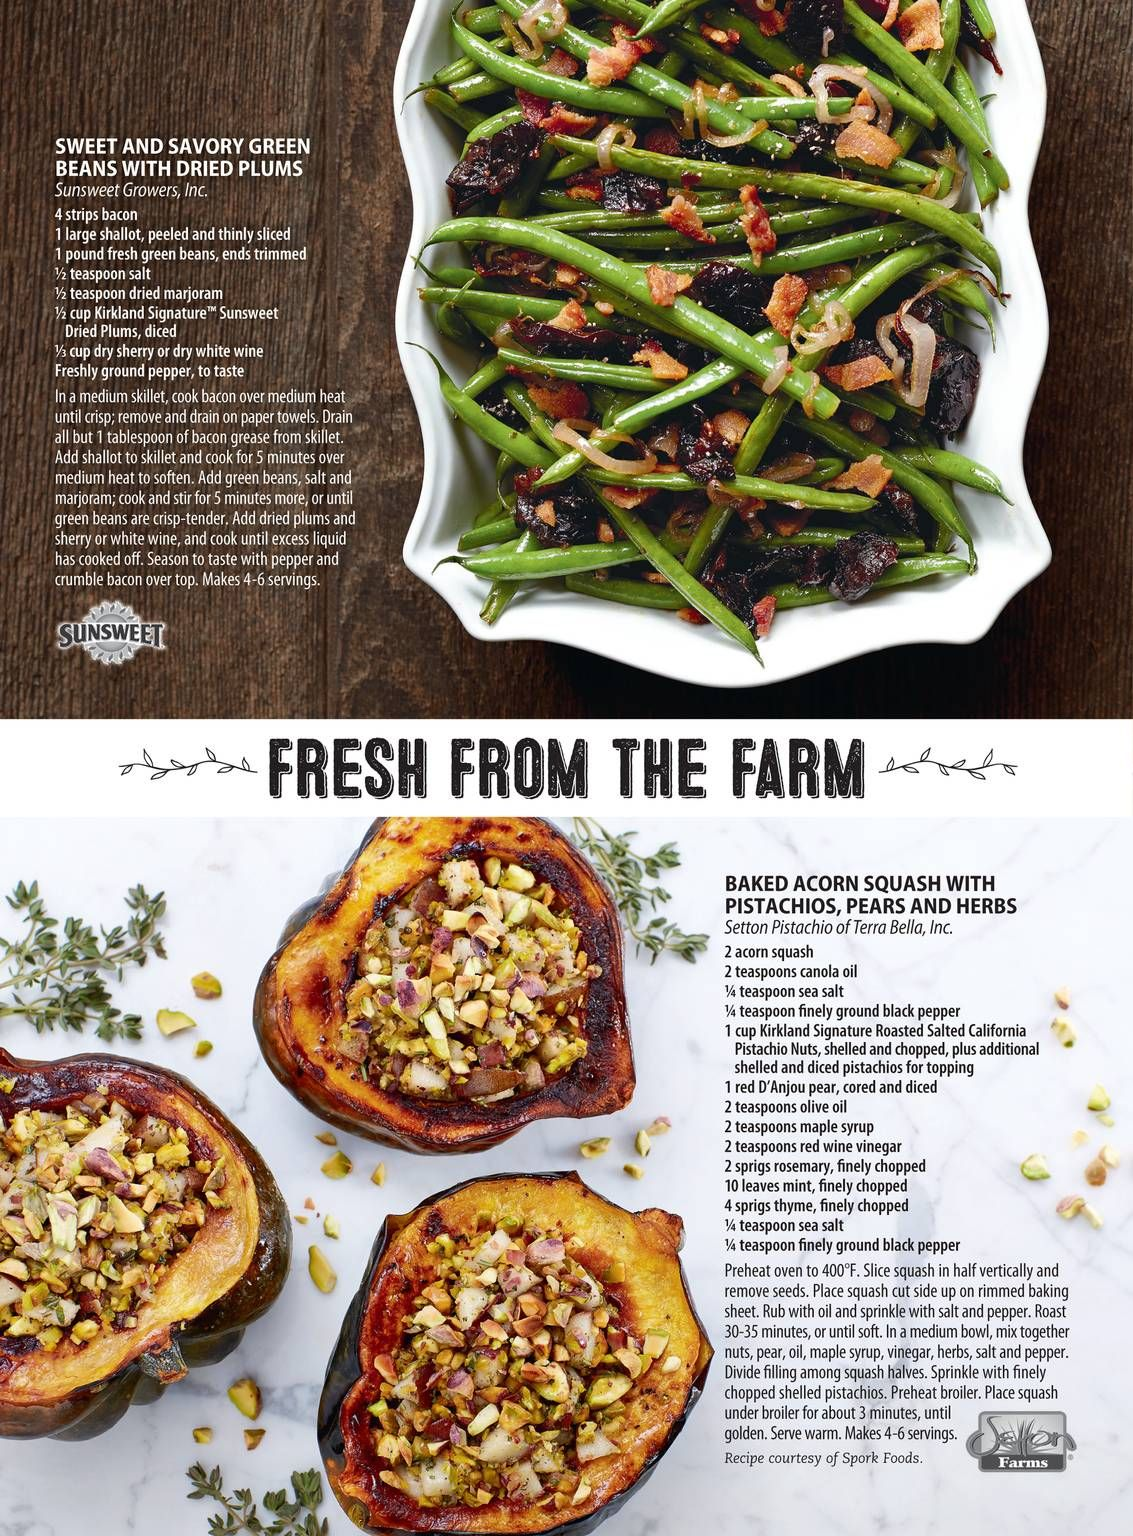 baked acorn squash with pistachios pears and herbs the costco